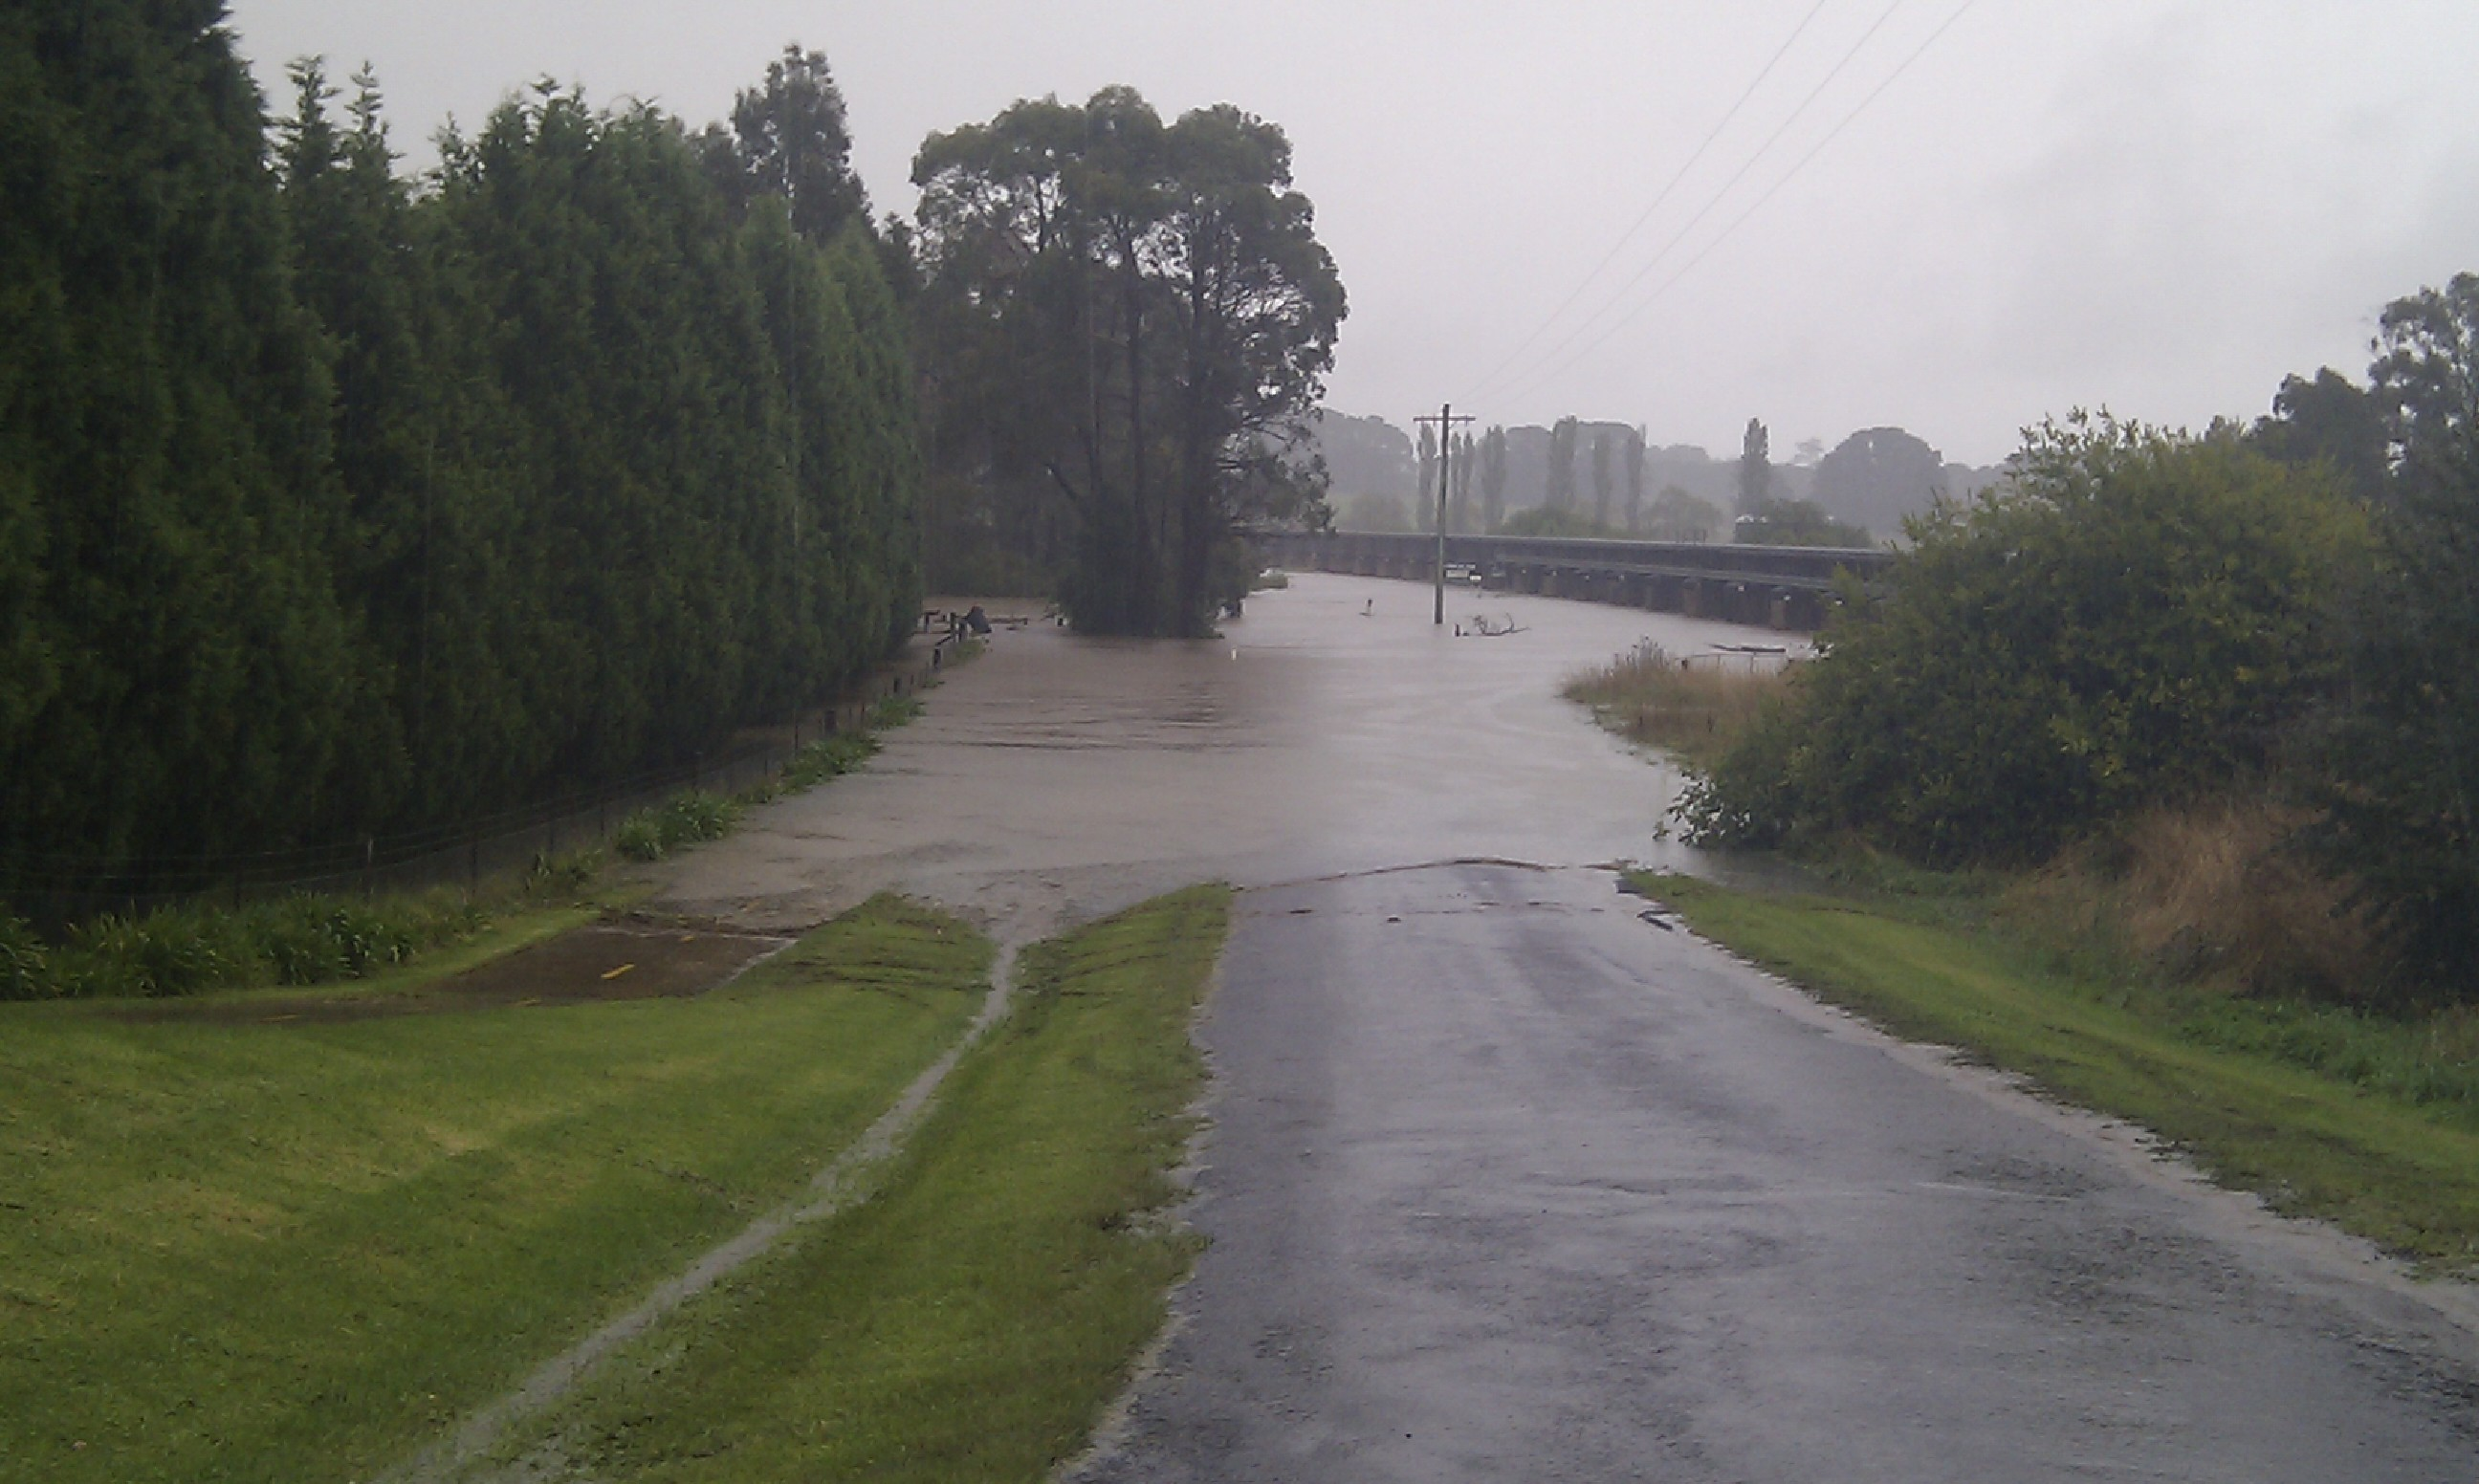 June 2007 Flood, Railway Road Burradoo